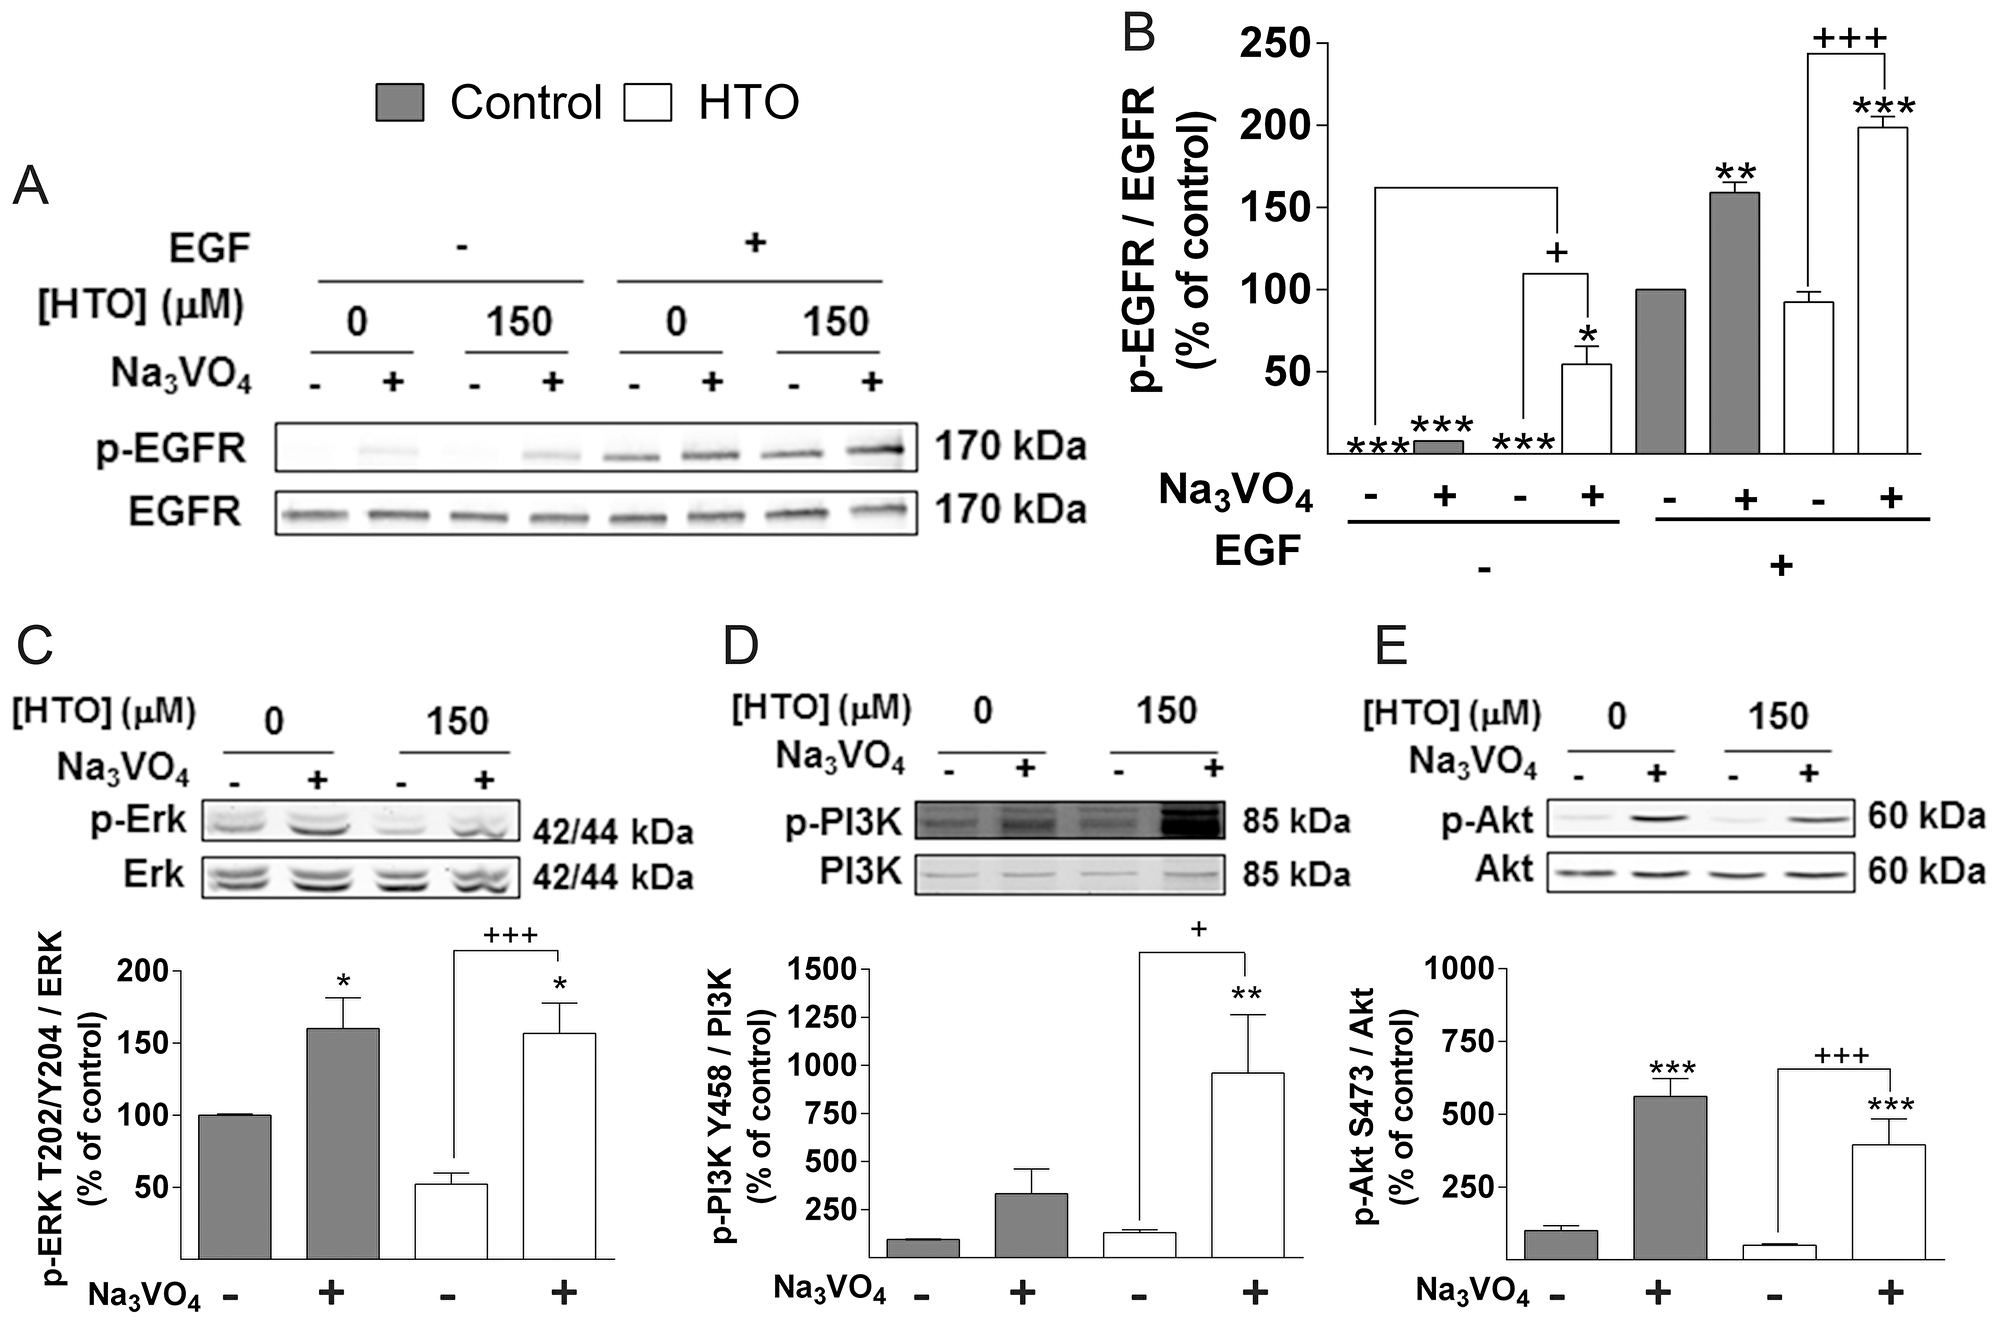 Effect of HTO on phosphatases.